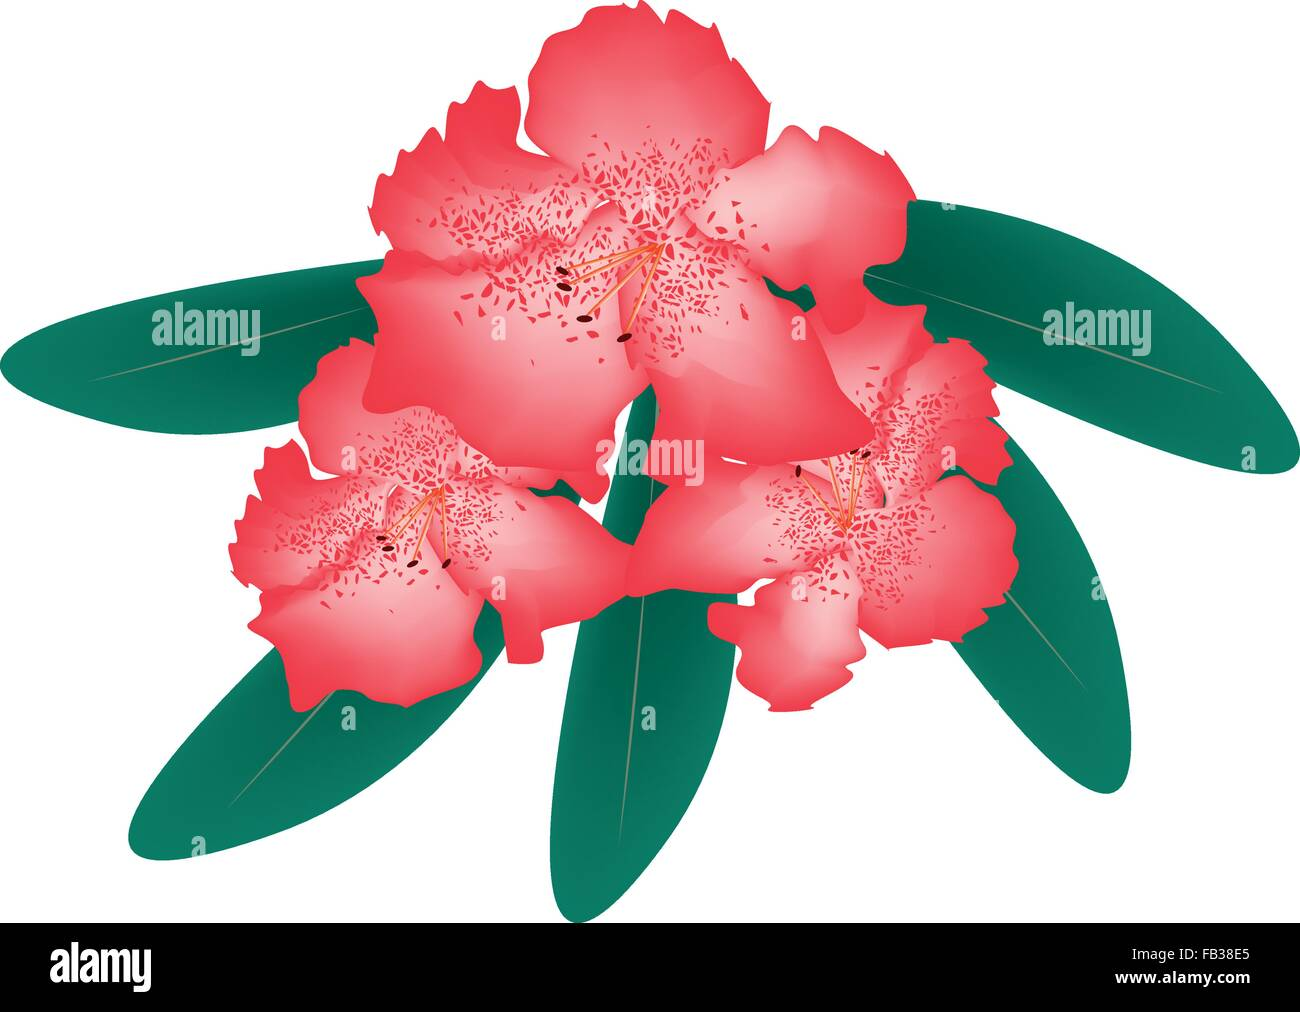 Beautiful Flower, Illustration of Red Rhododendron Ponticum Flowers with Green Leaves Isolated on White Background. - Stock Vector